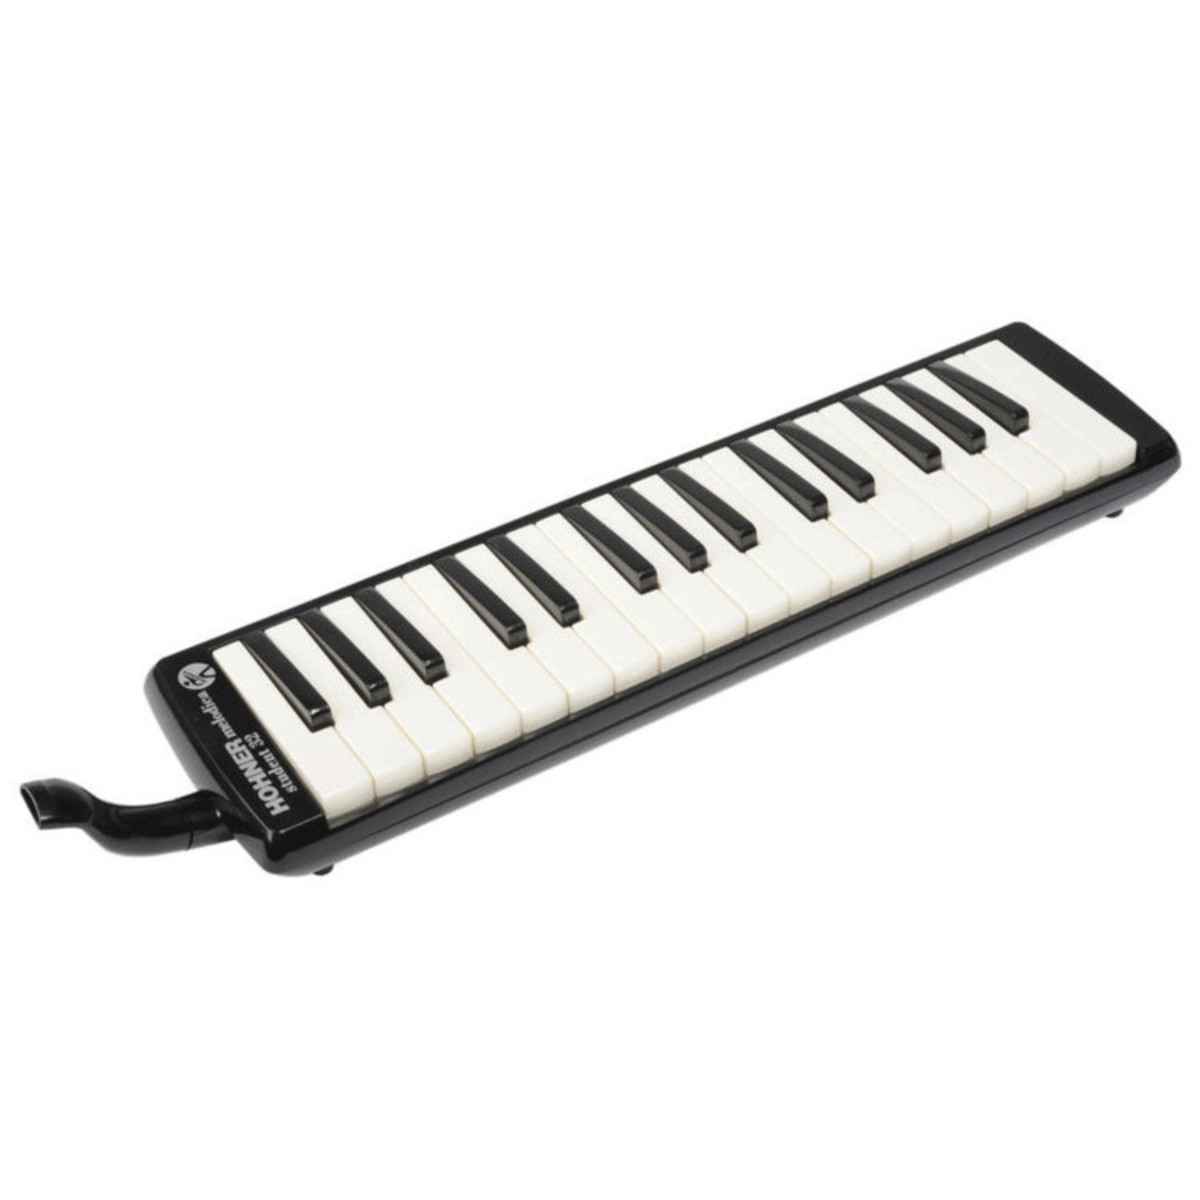 Hohner Student 32 Melodica Black At Gear4music